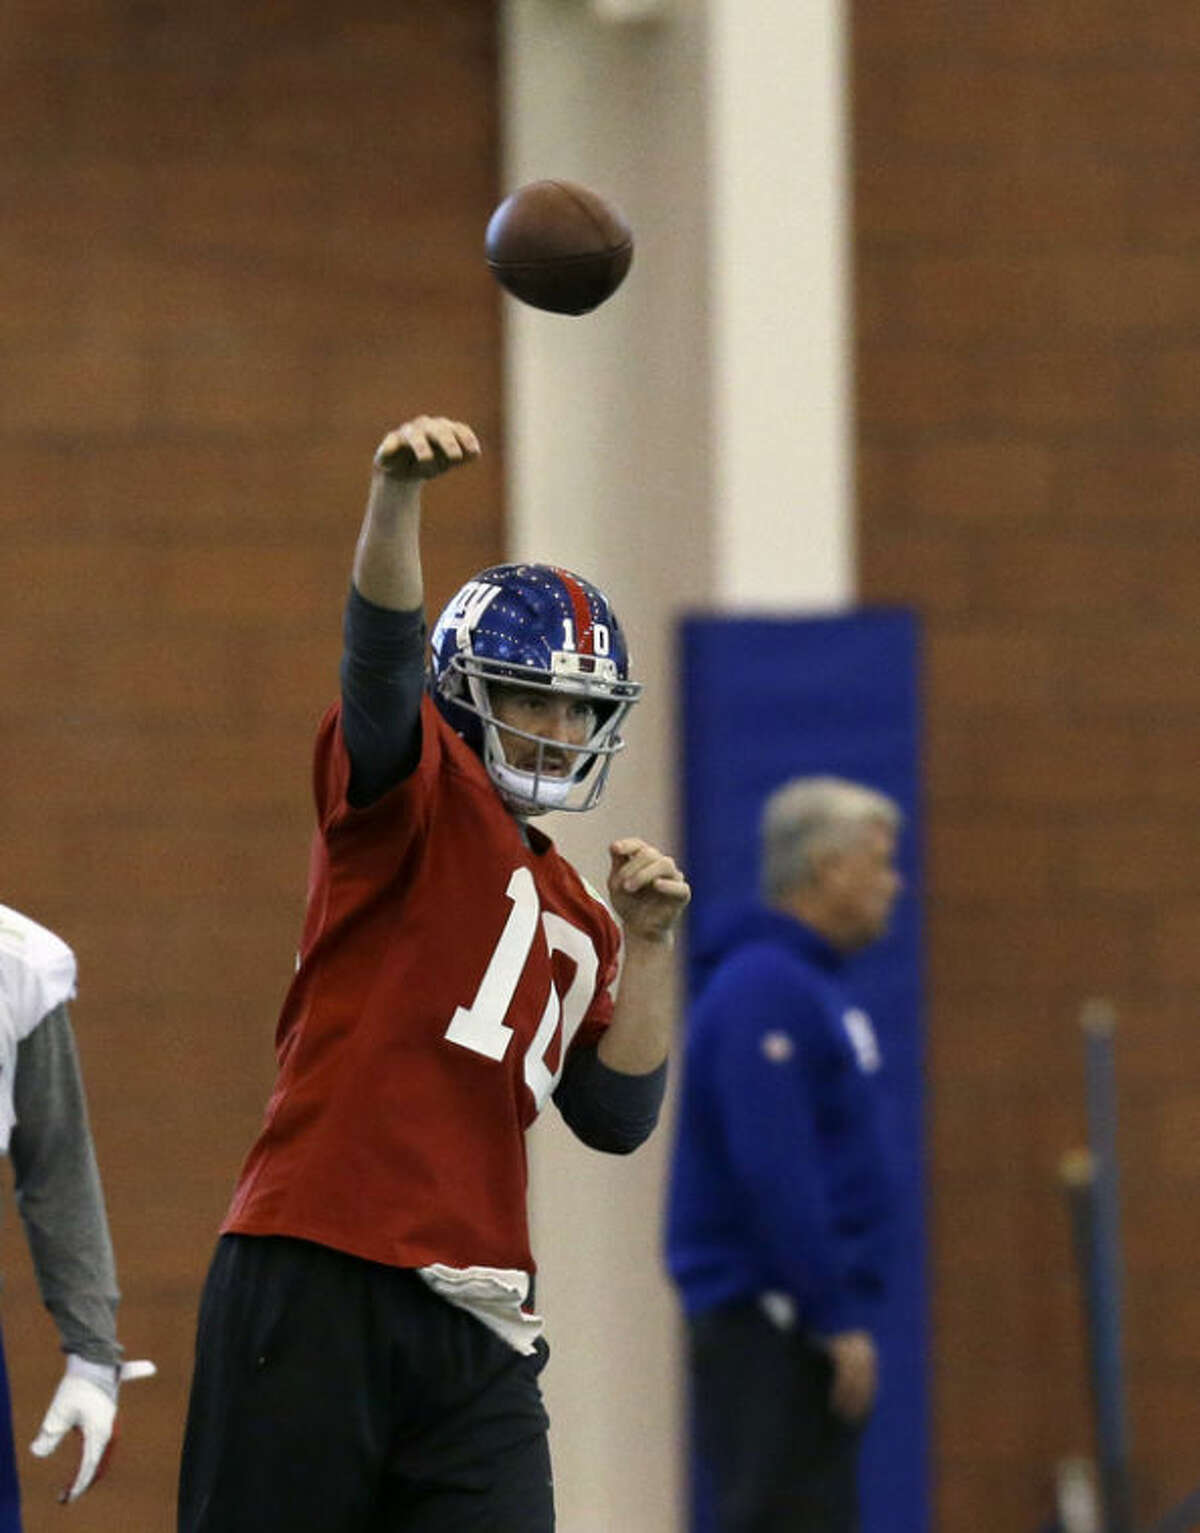 New York Giants quarterback Eli Manning (10) throws a pass during NFL football practice in East Rutherford, N.J., Wednesday, Nov. 20, 2013. AP Photo/Mel Evans)